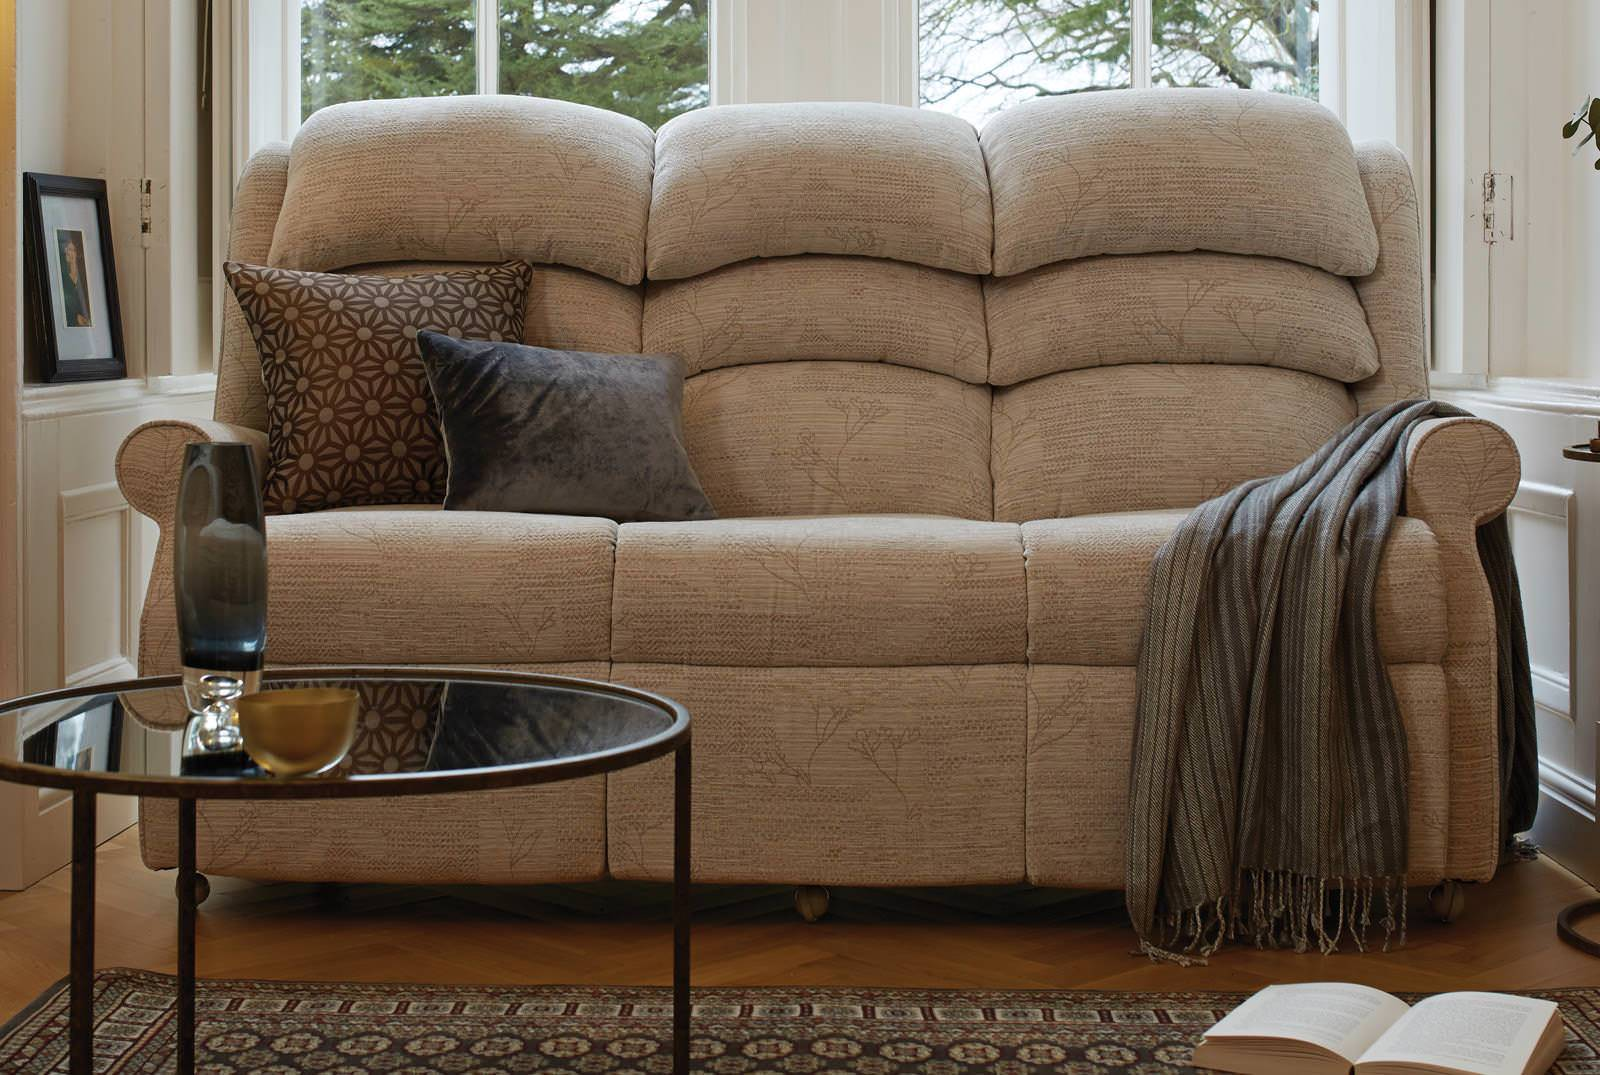 Waltham Three-Seater Comfort Sofa in Lucky Harper Patchwork Stone